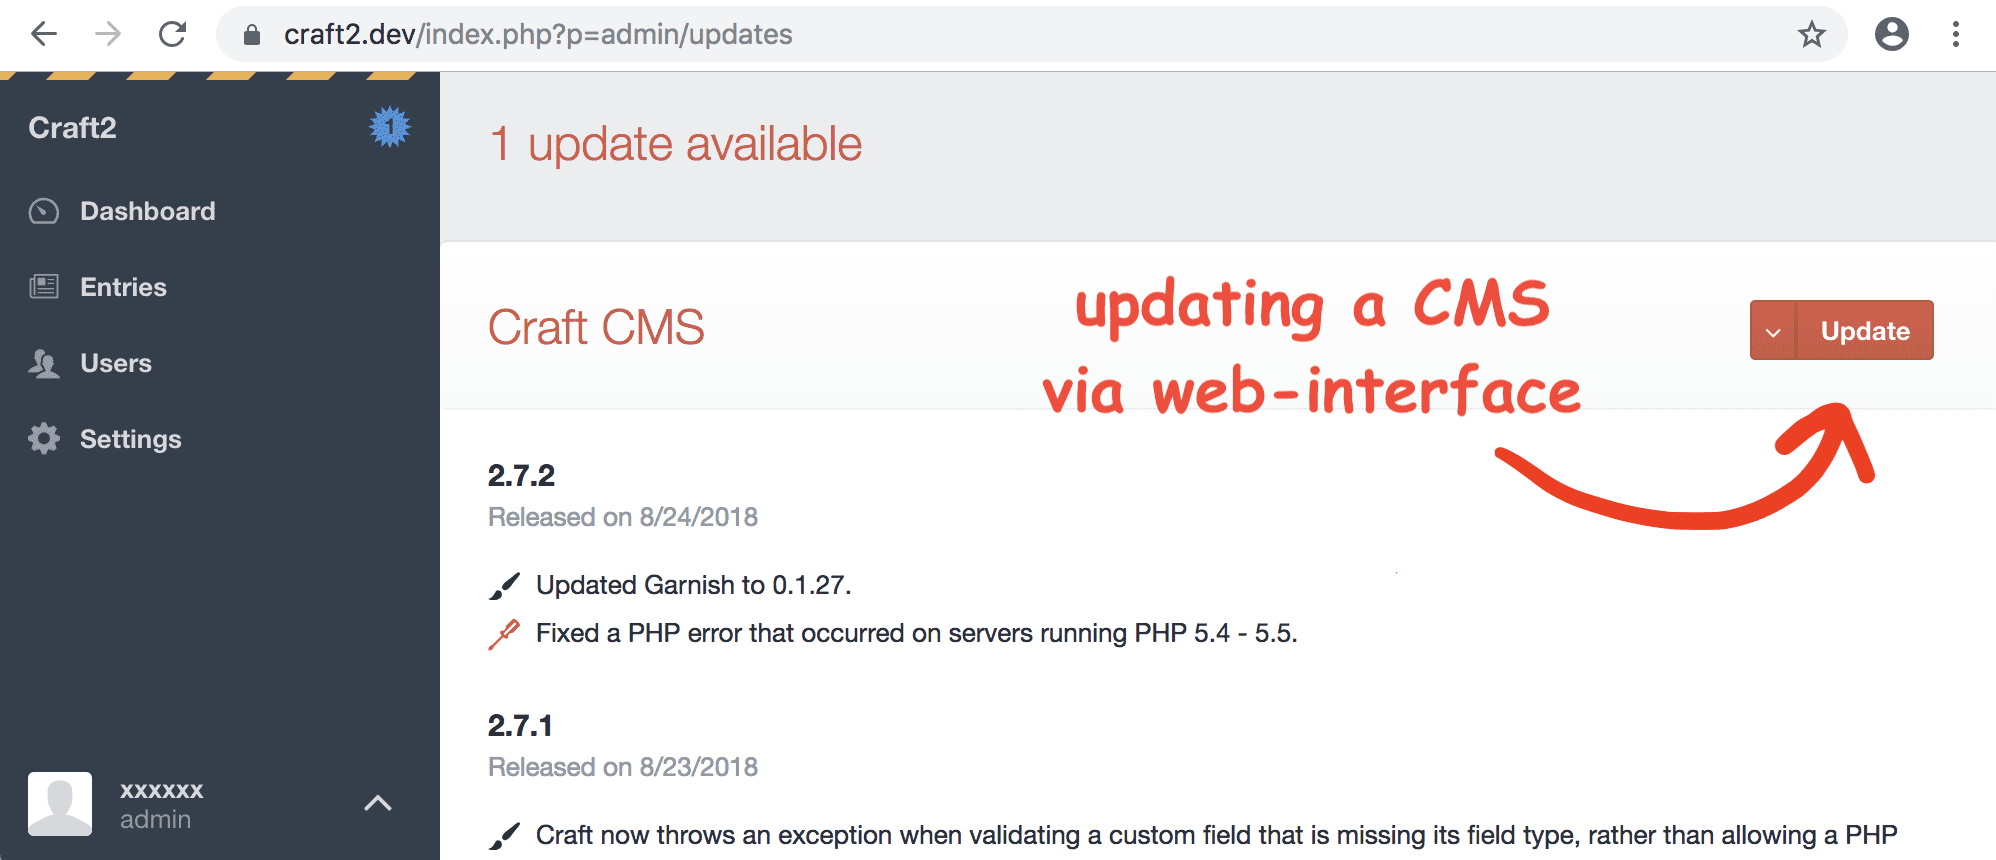 web interface update in CraftCMS